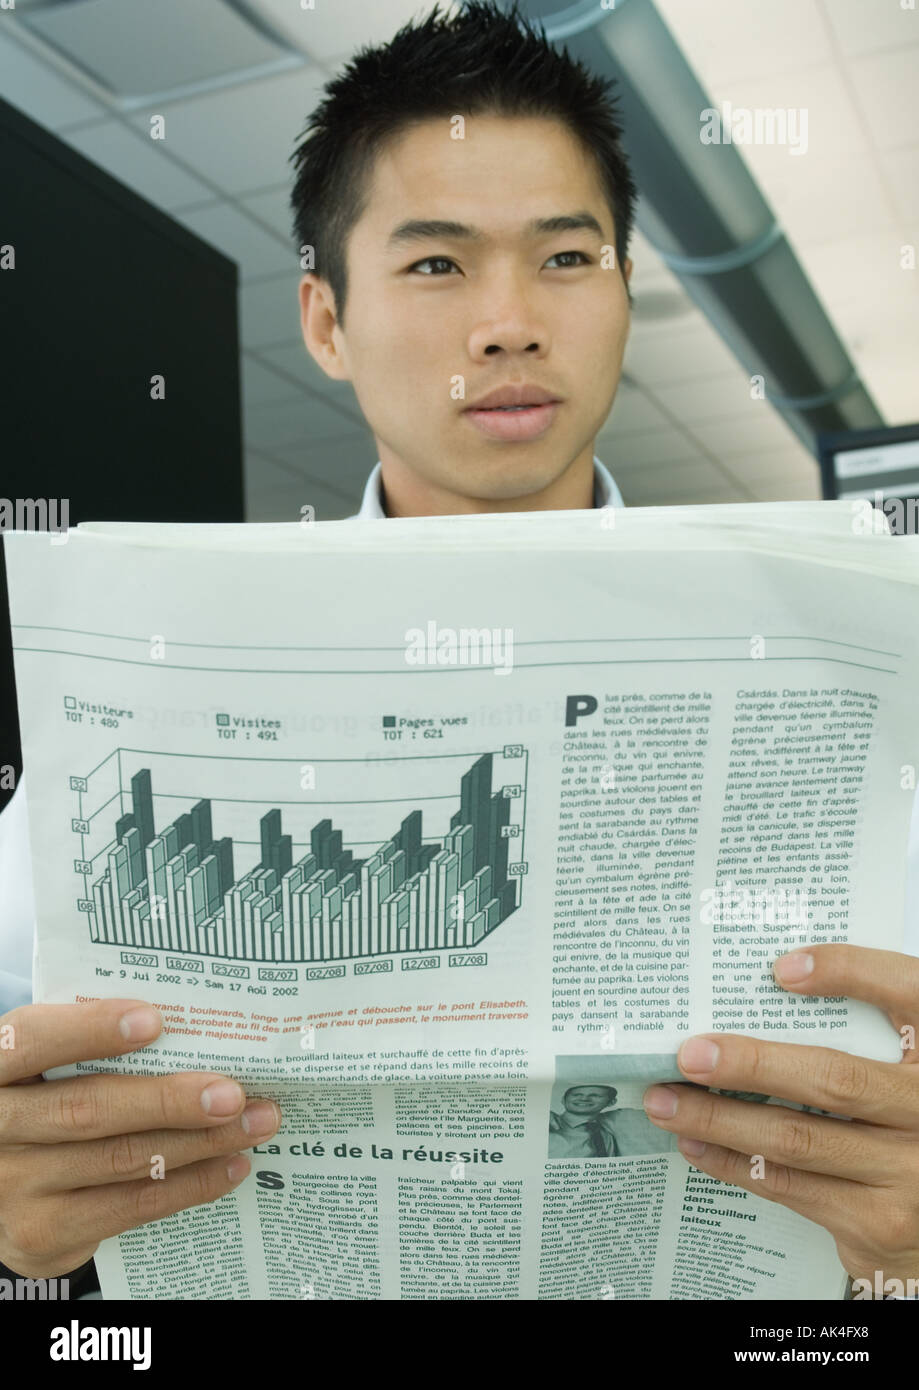 Man looking up from newspaper - Stock Image